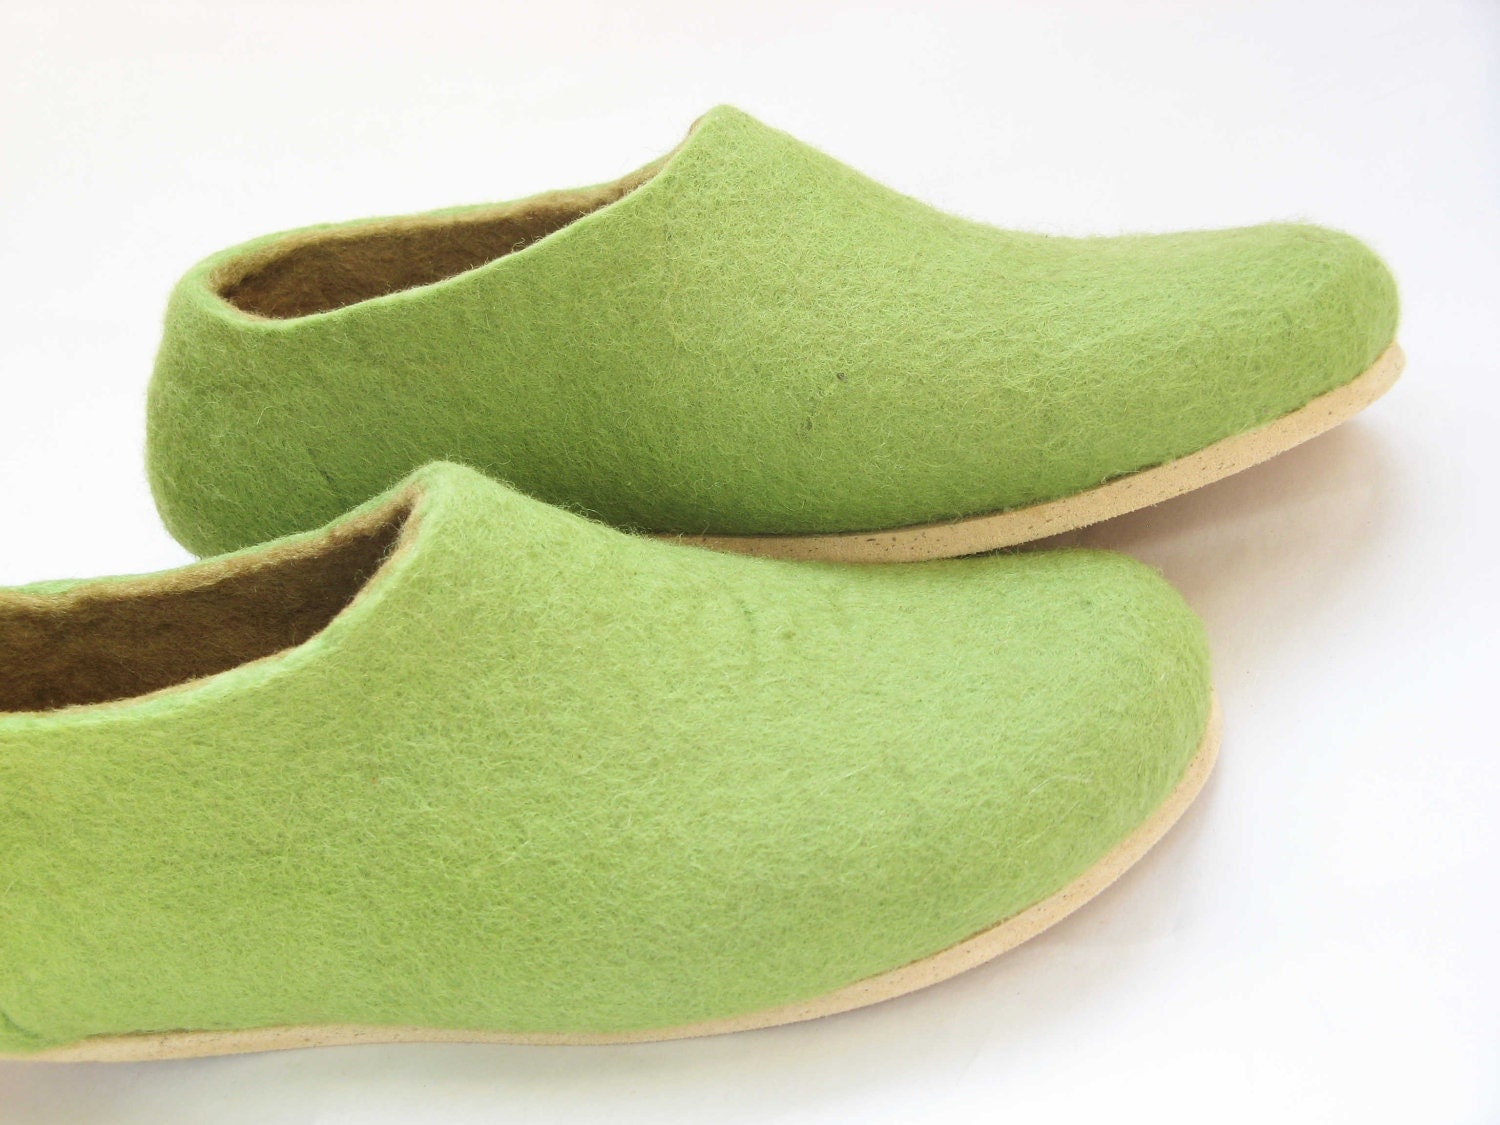 cork sole fixed on felted slippers